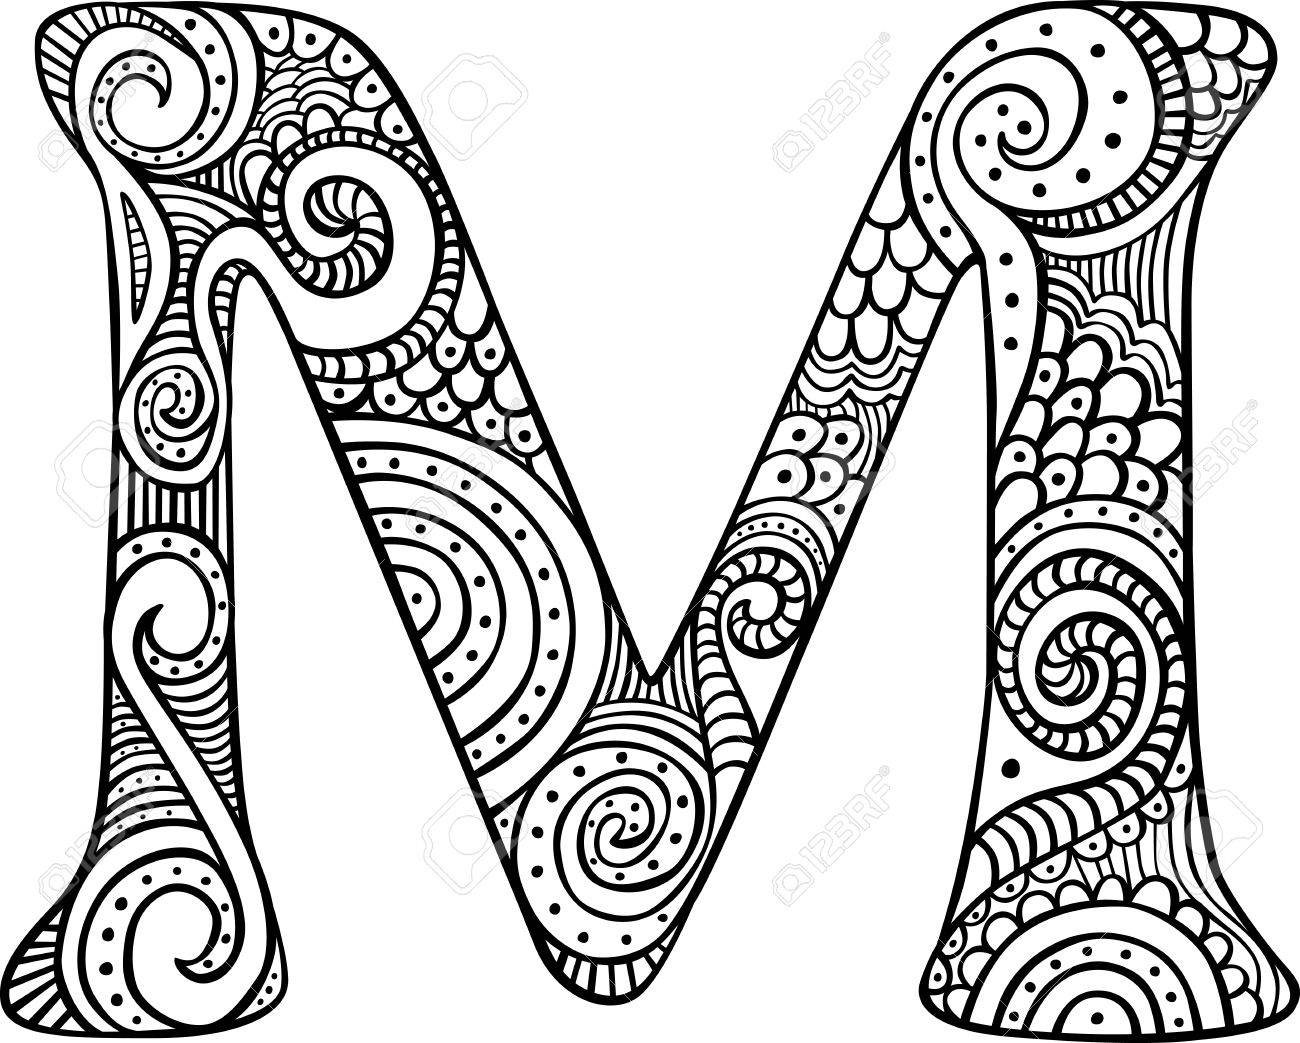 letter m coloring page rounded letter m coloring page download print online letter page m coloring